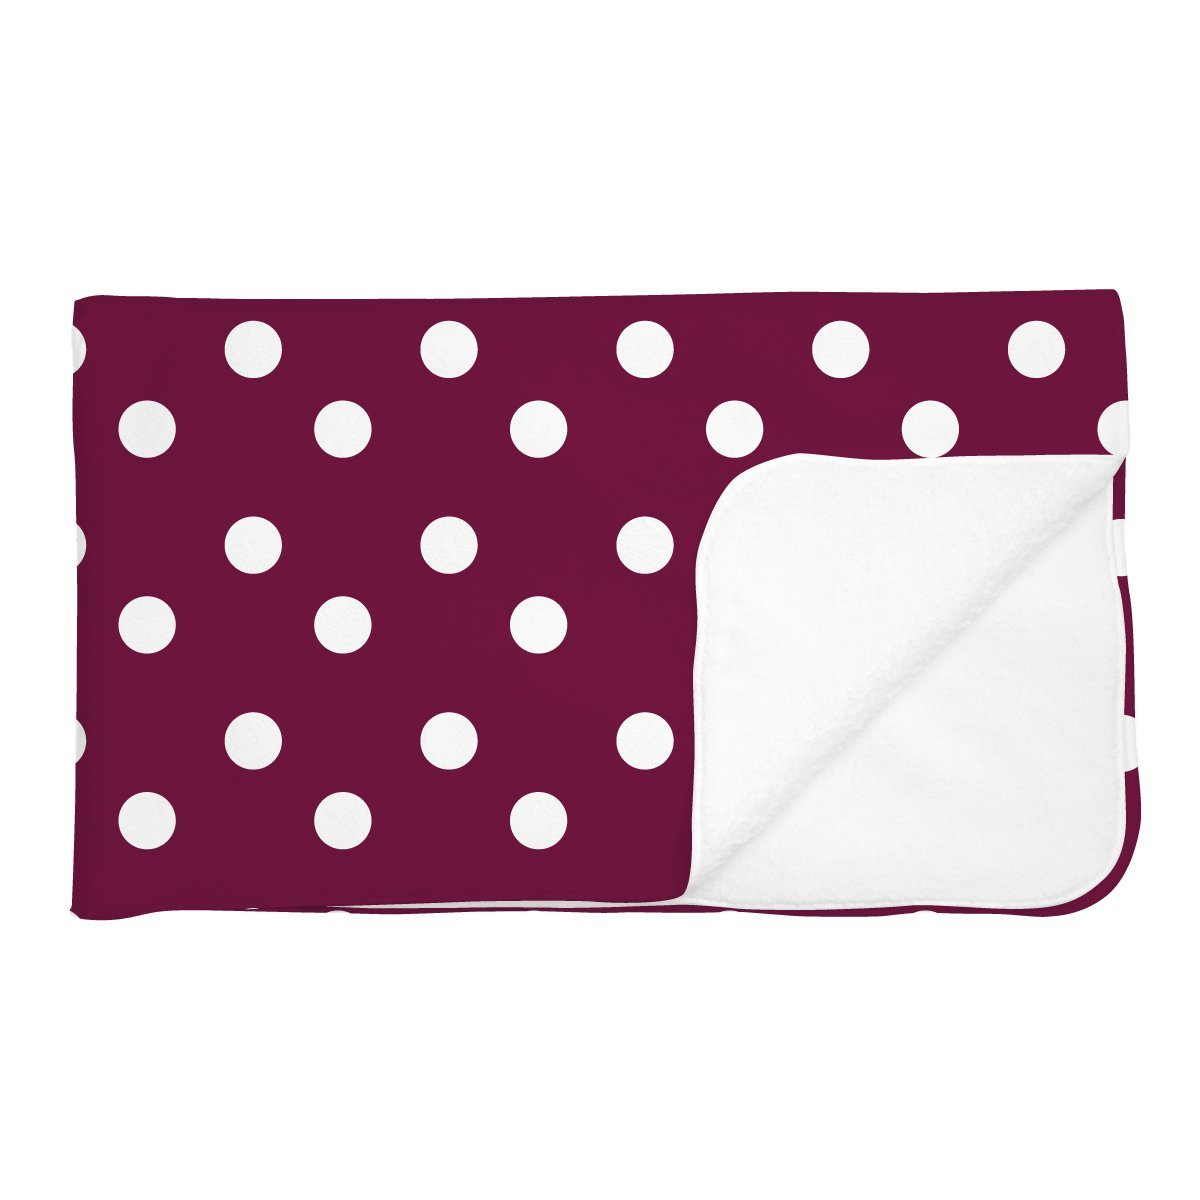 Jane's Dot Party | Adult Size Blanket